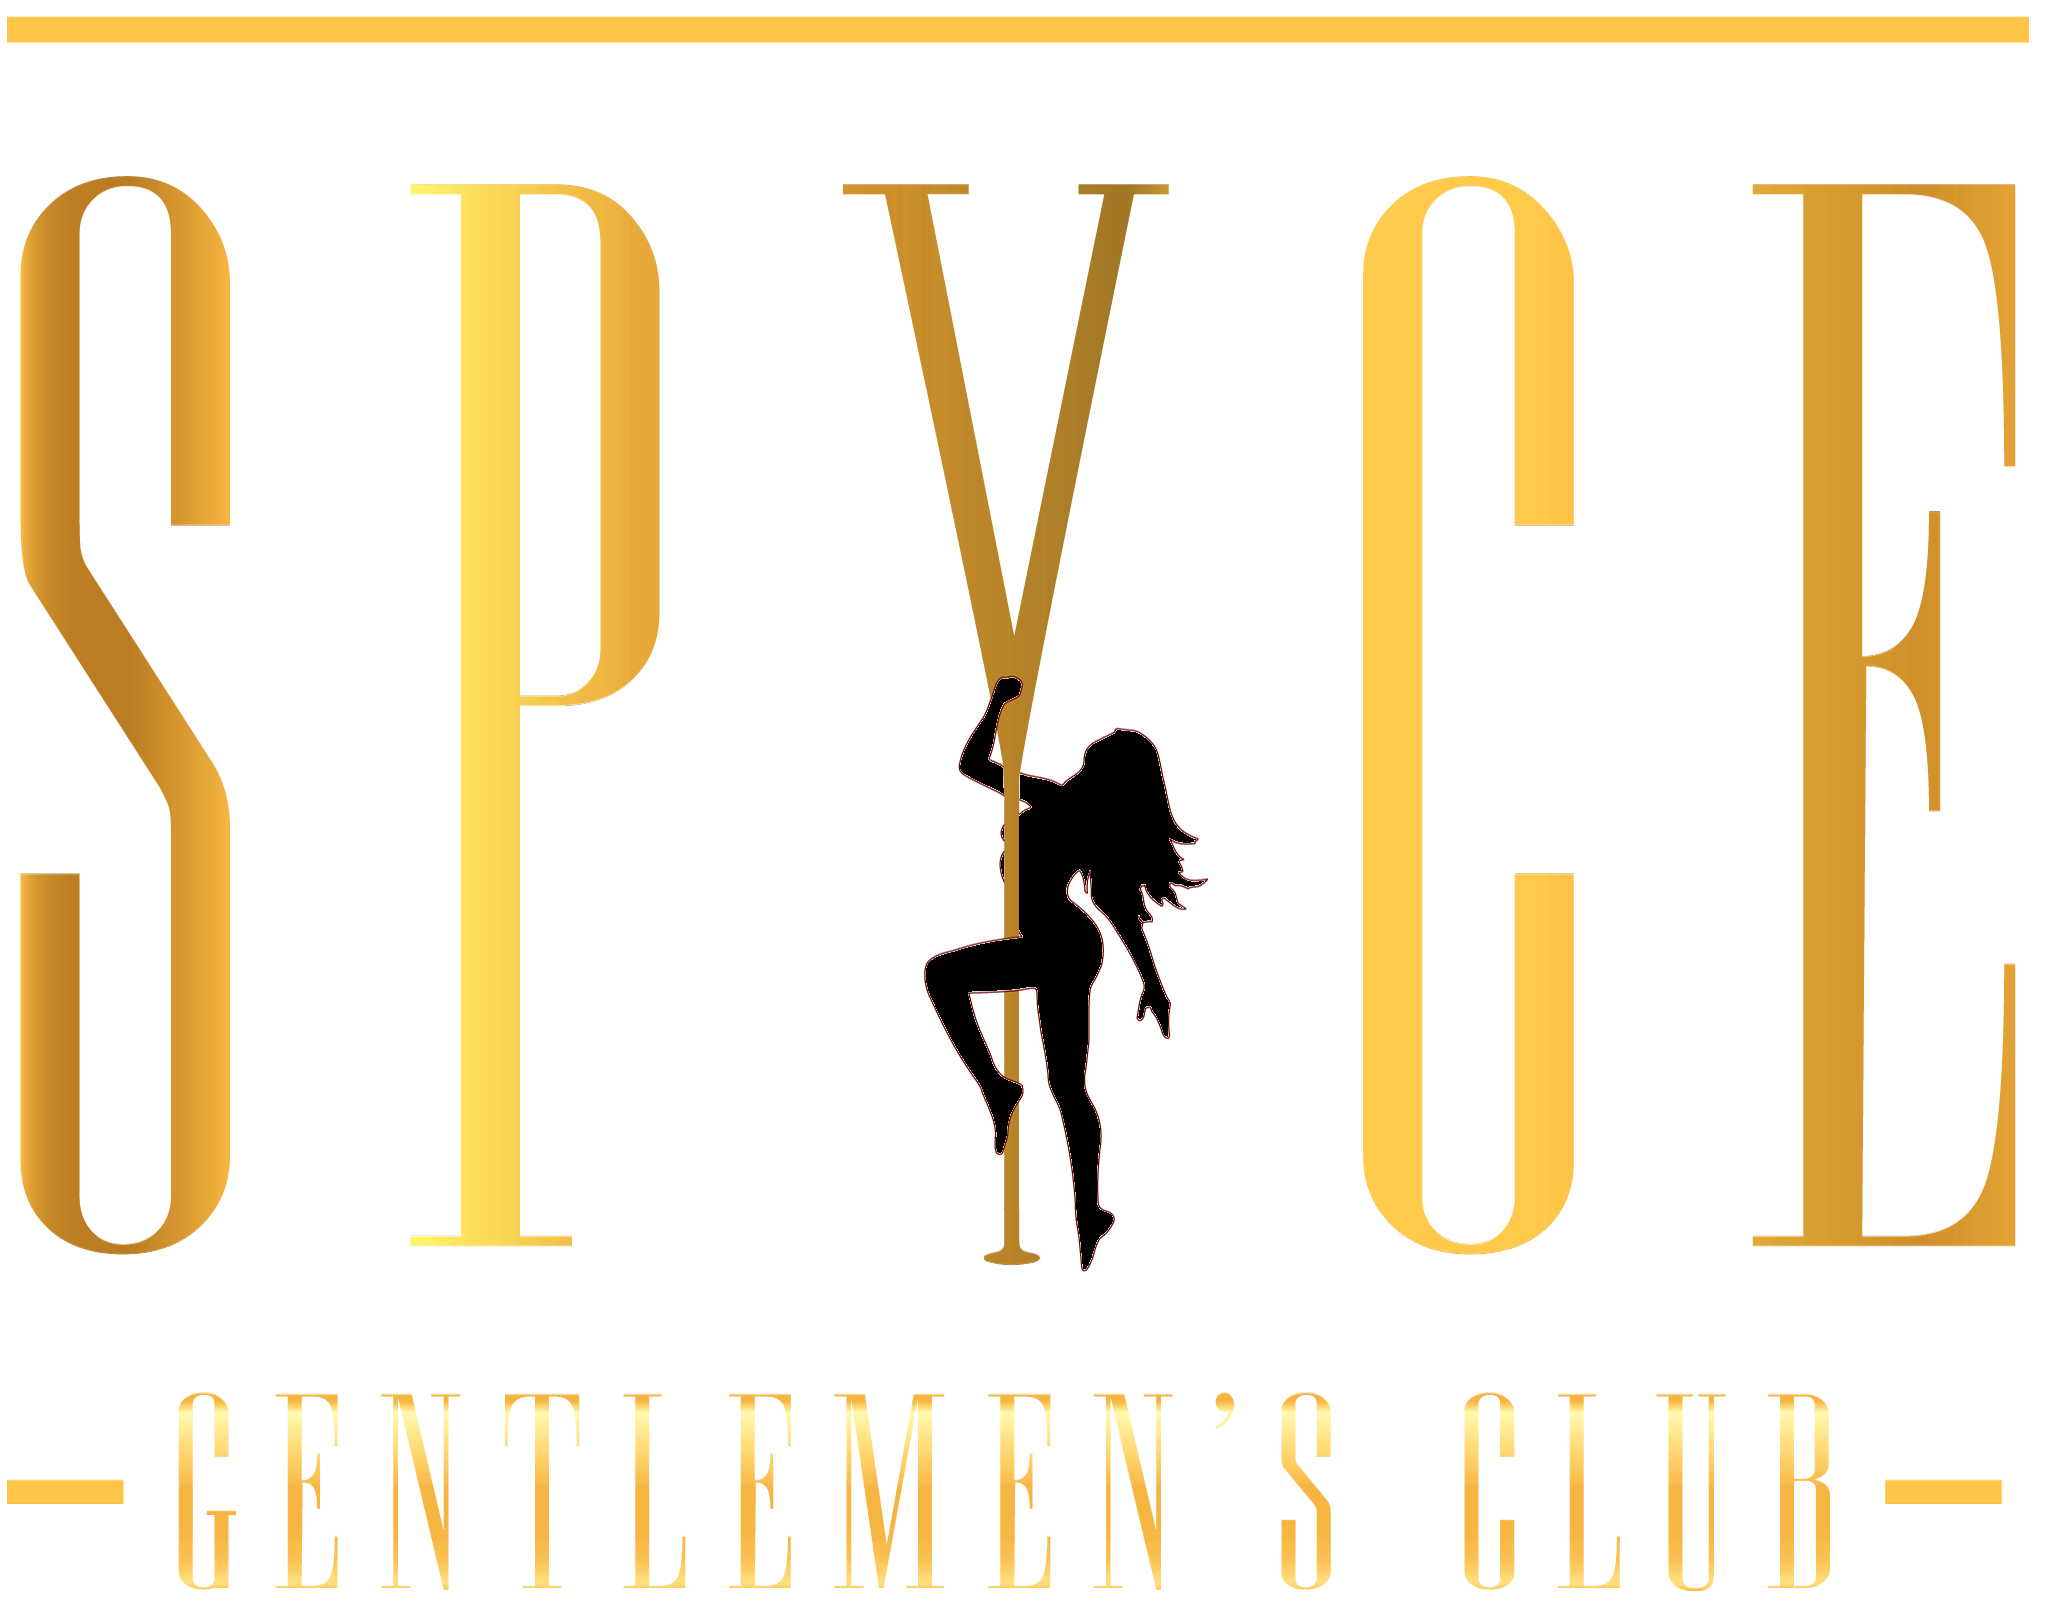 Spyce Gentlemen's Club